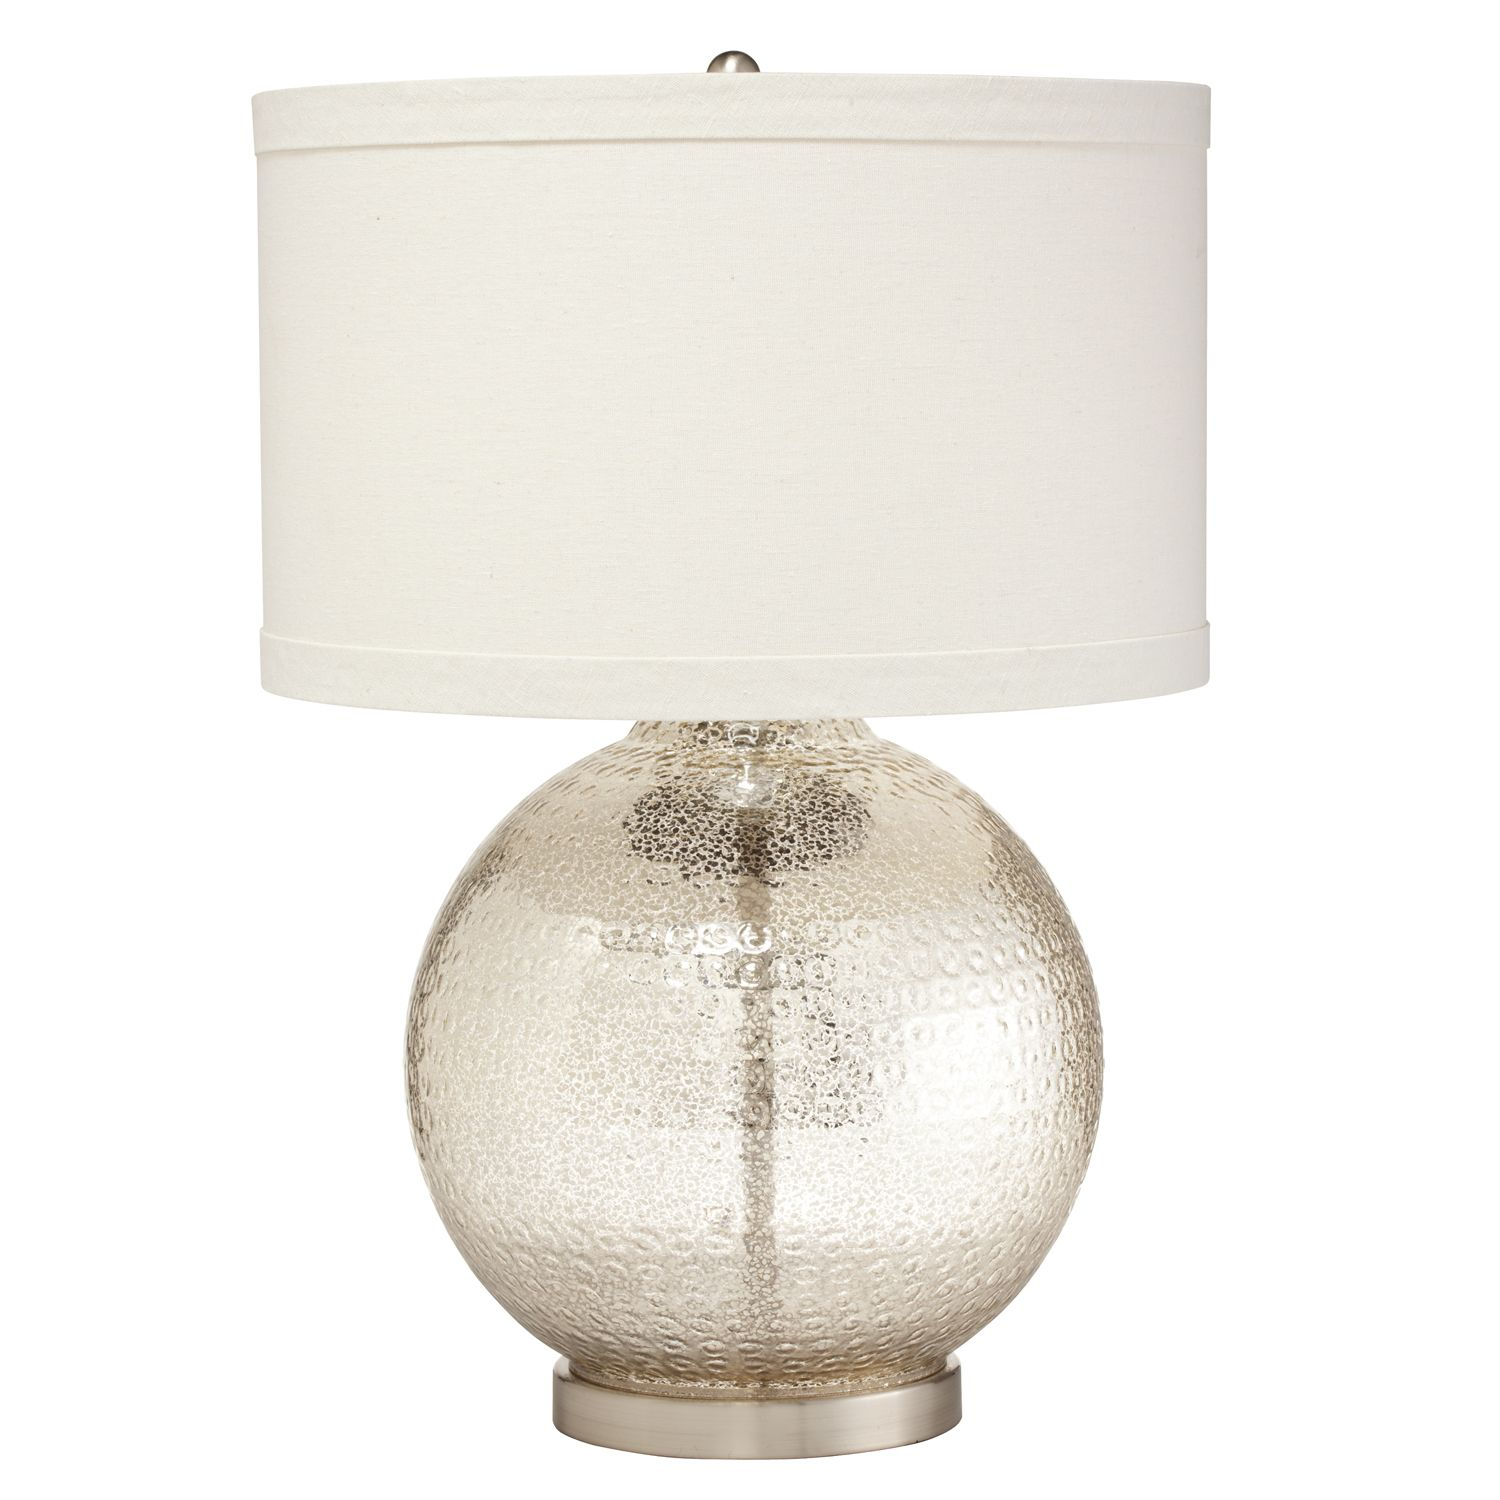 Mercury glass table lamps A Nostalgic Sparkle For Every Home